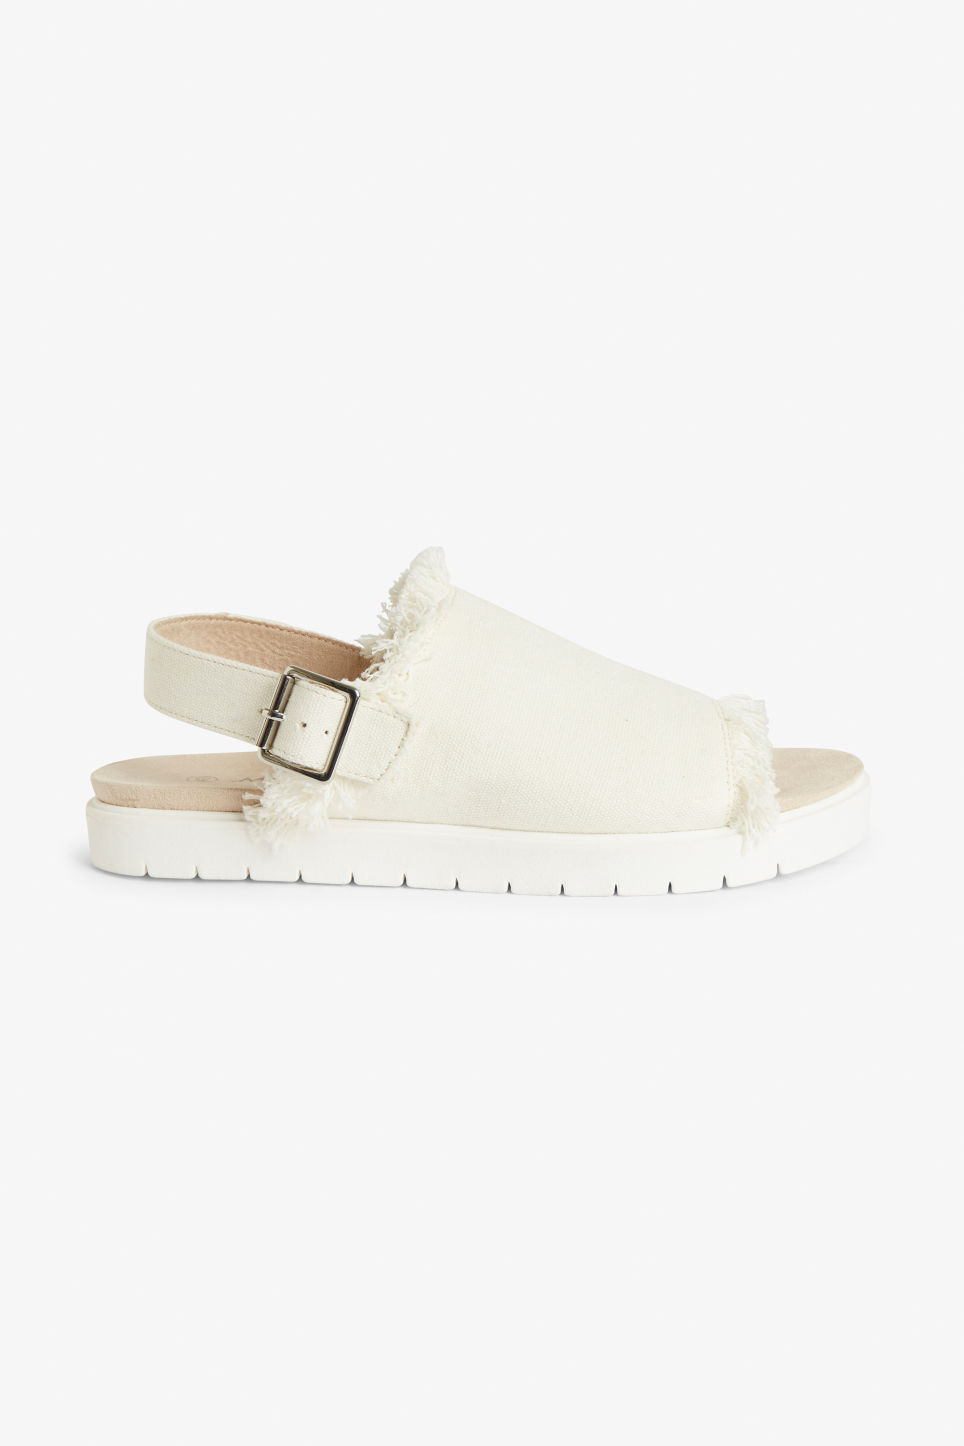 Detailed image of Monki slingback sandals in white